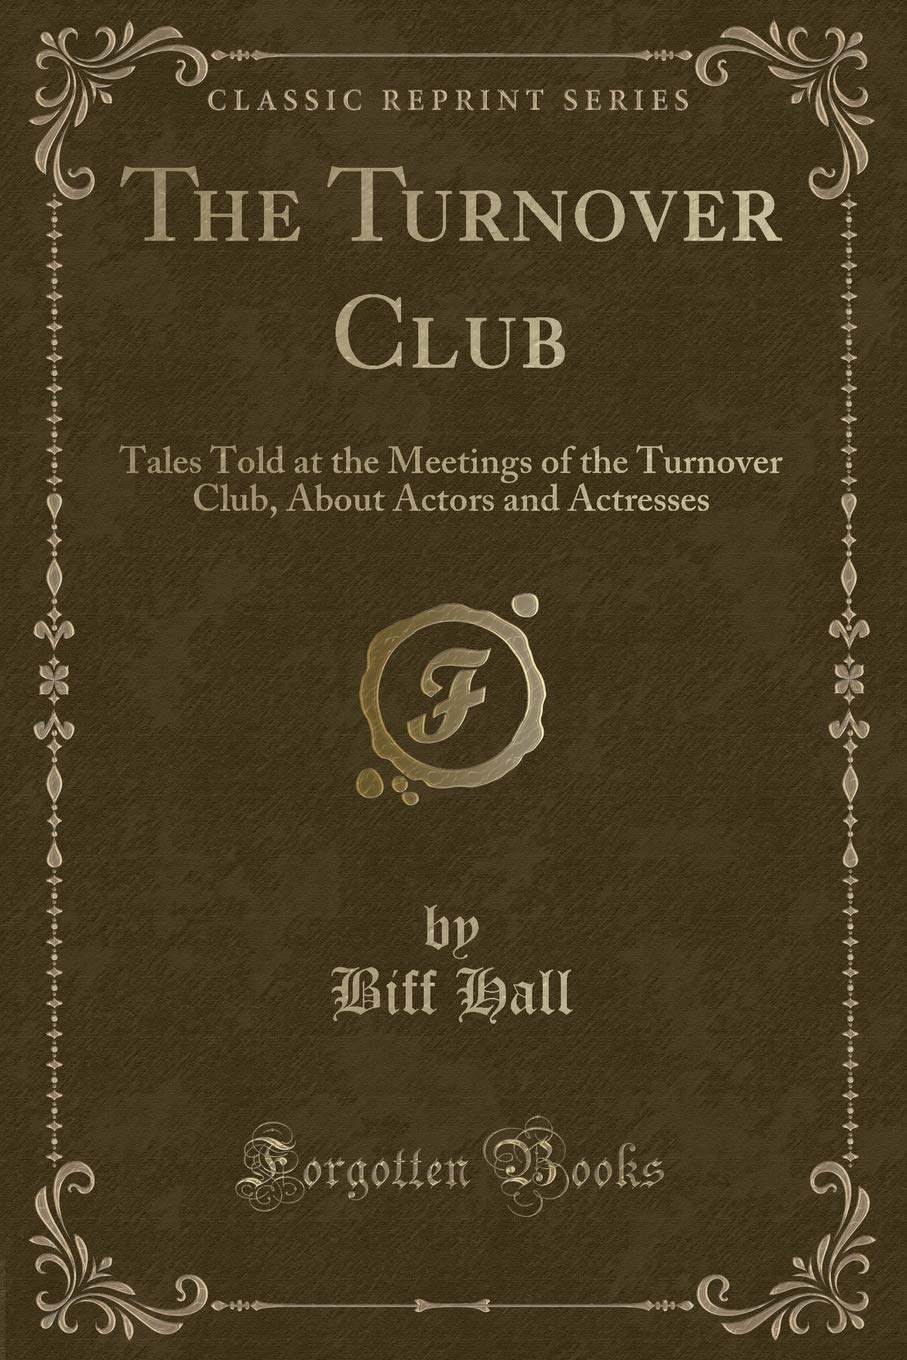 The Turnover Club: Tales Told at the Meetings of the Turnover Club, About Actors and Actresses (Classic Reprint) pdf